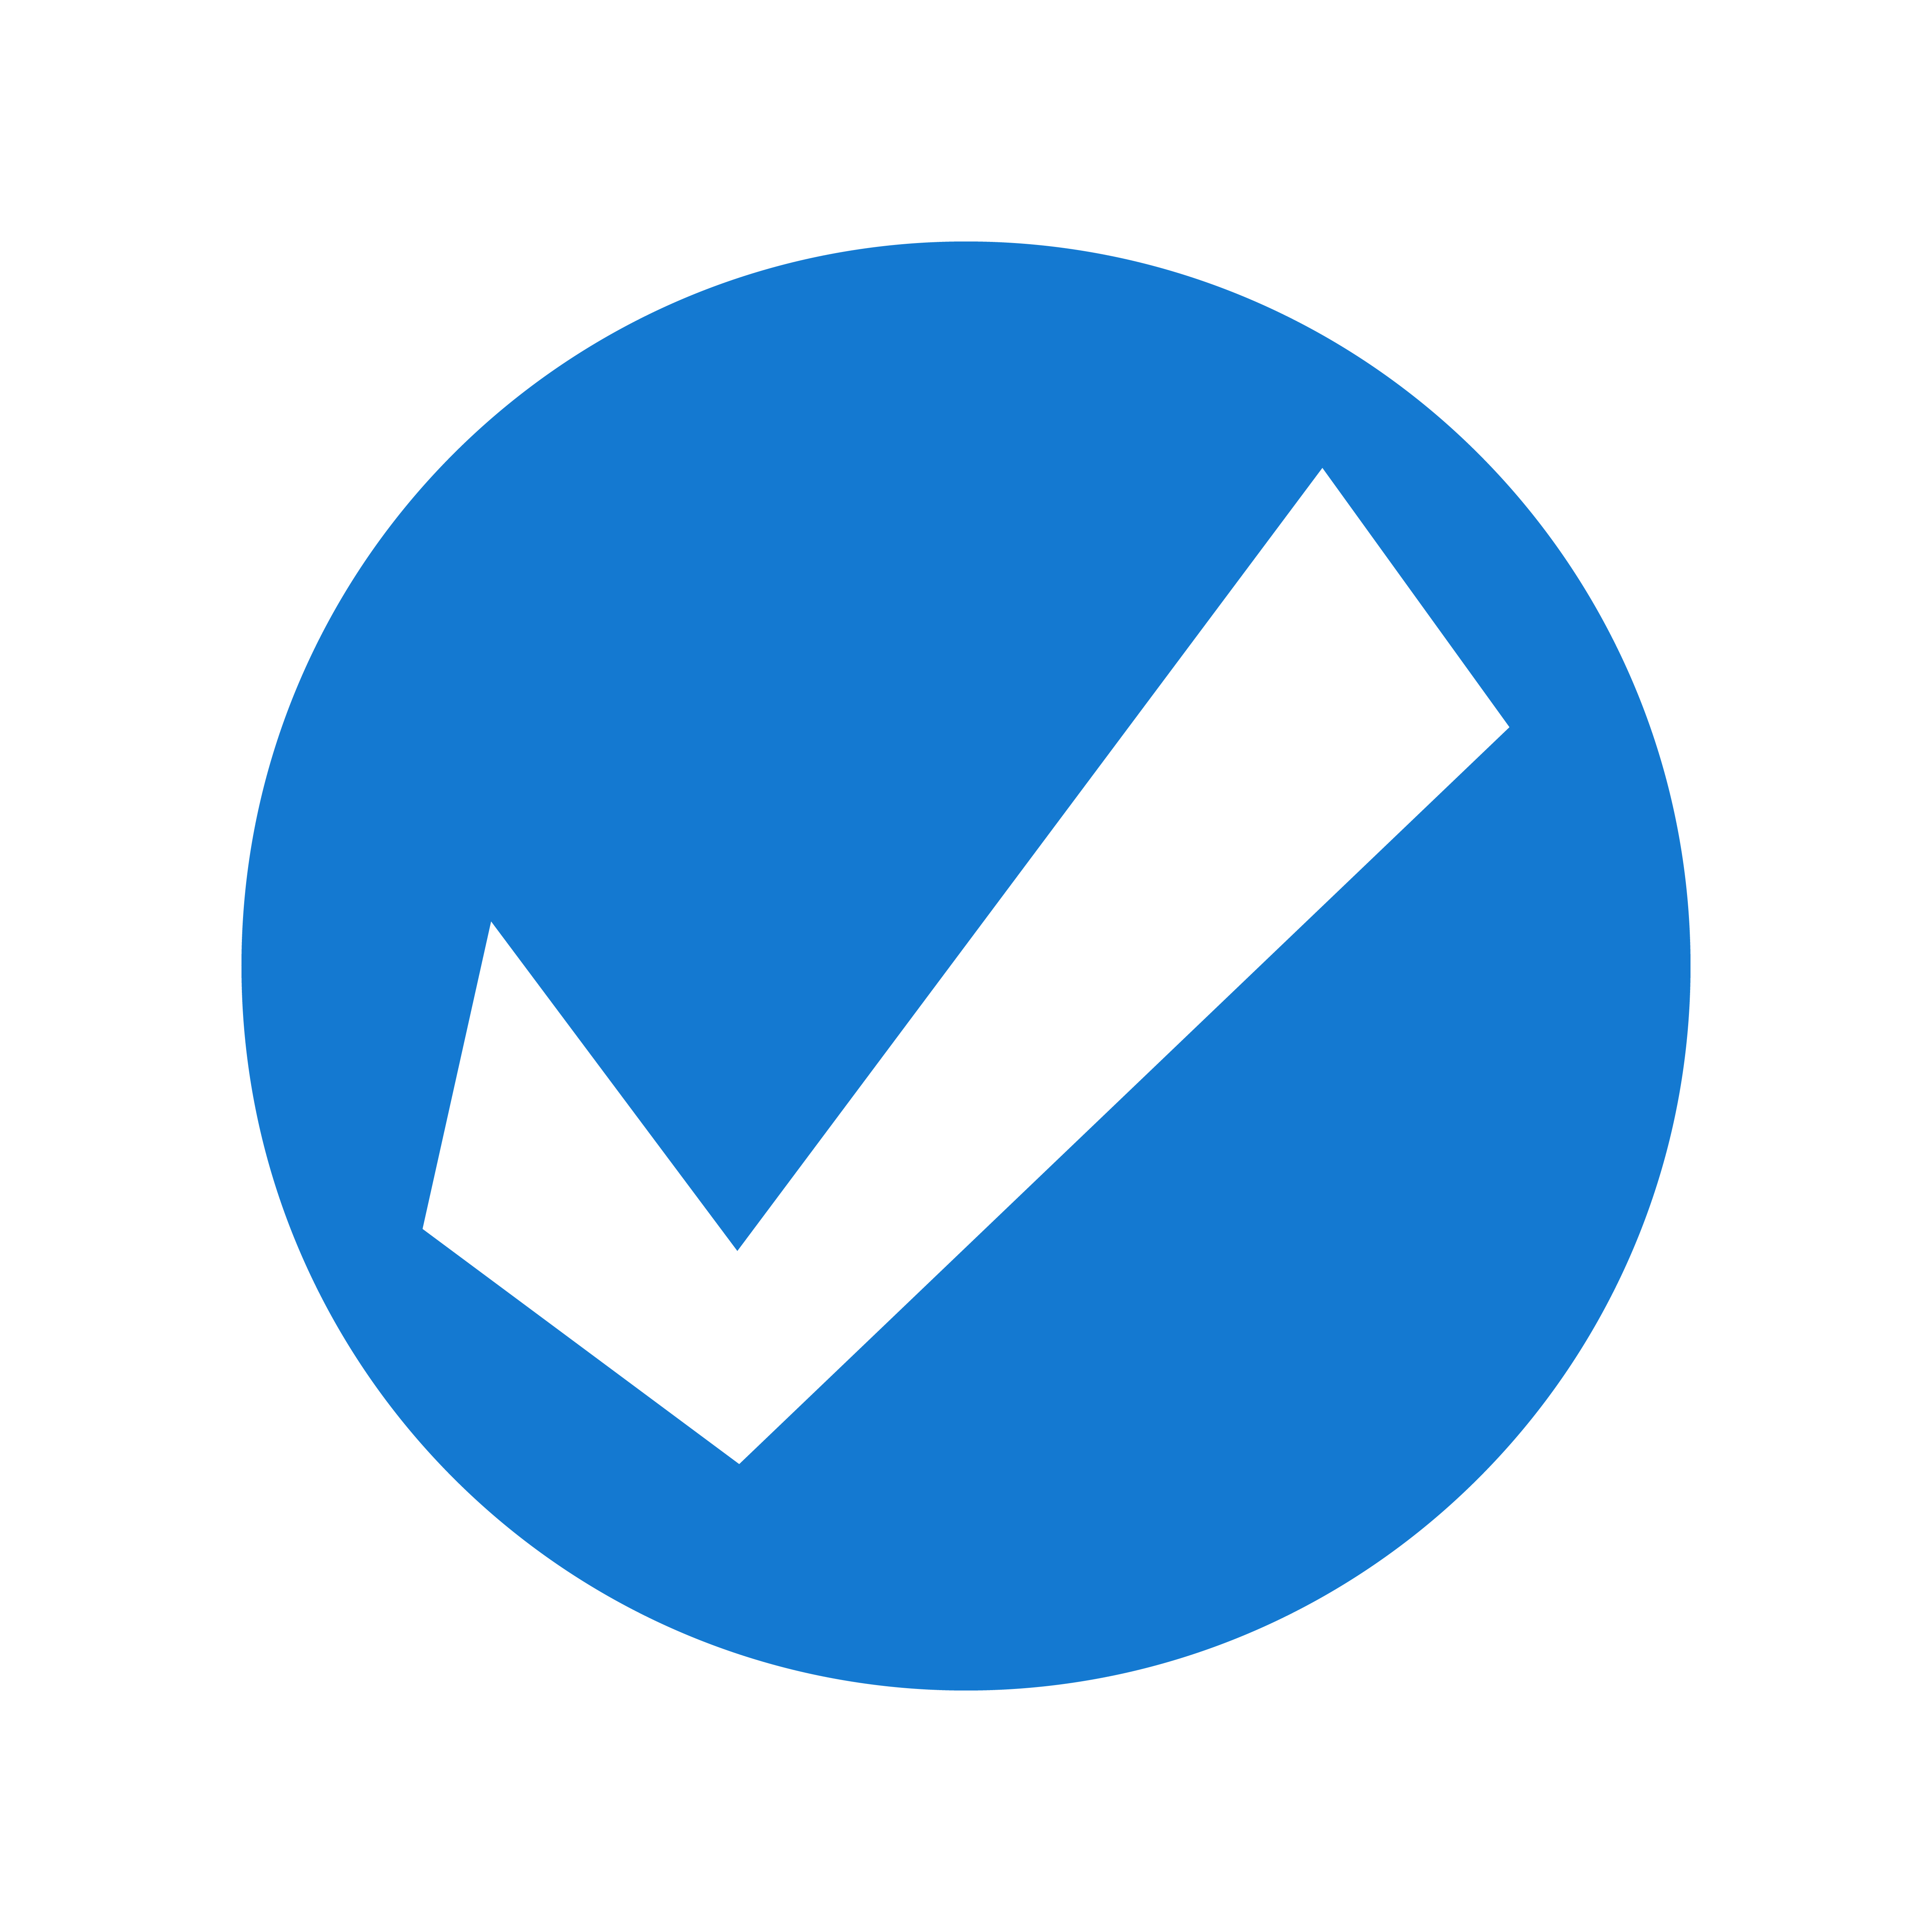 Check Mark Vector Icon - Download Free Vectors, Clipart ... on ✔  id=54402